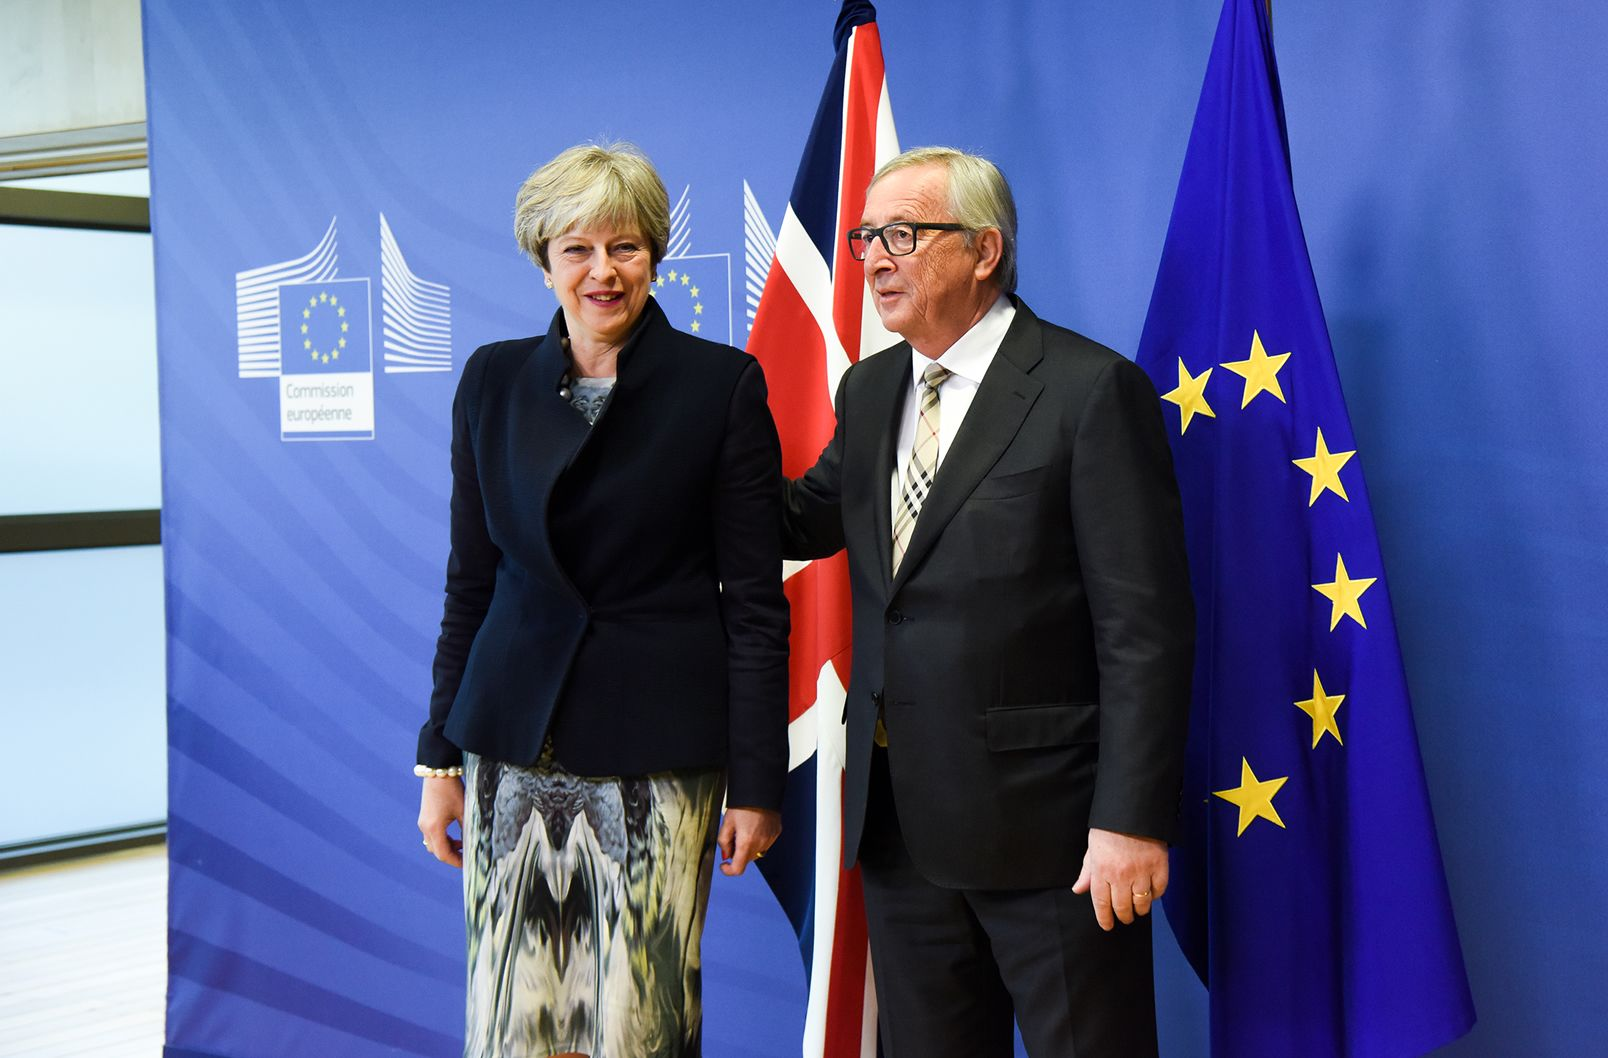 Juncker and May at the European Commission